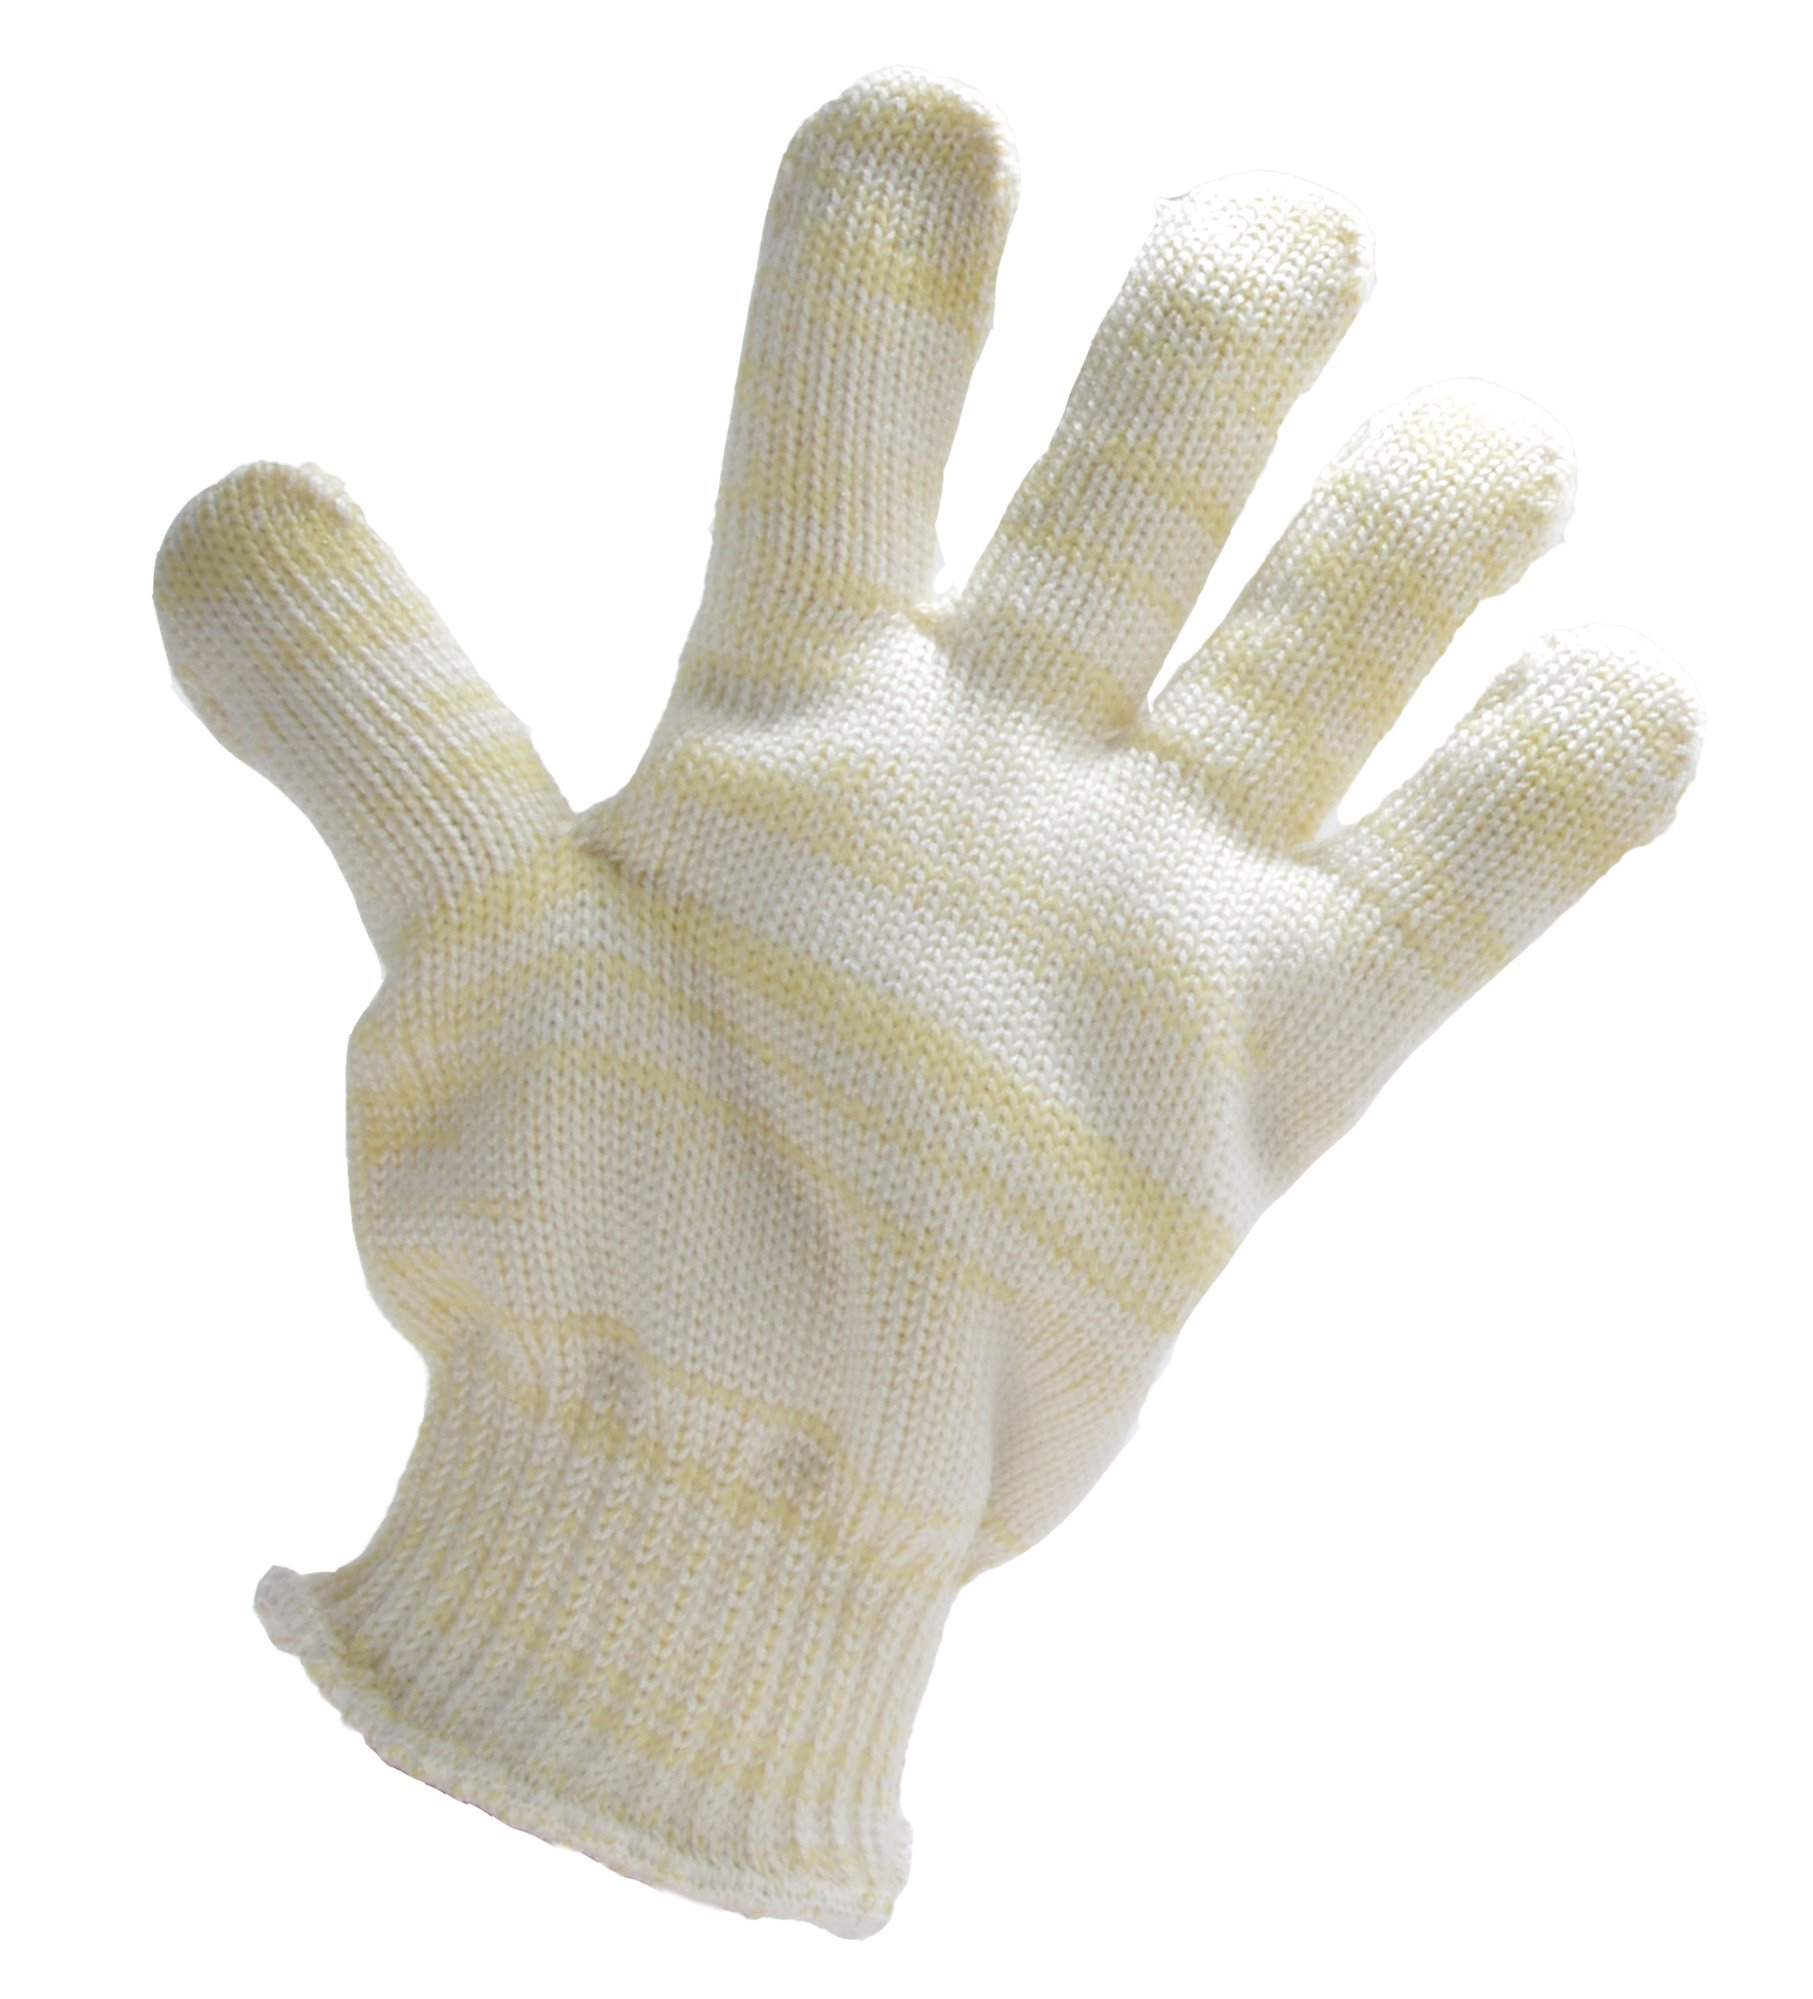 Oven Glove by HotStuff Chef. Made in the USA. Absolutely The Best. Professional Grade. Cut, Flame and Heat Resistant by Hotstuff Chef (Image #2)